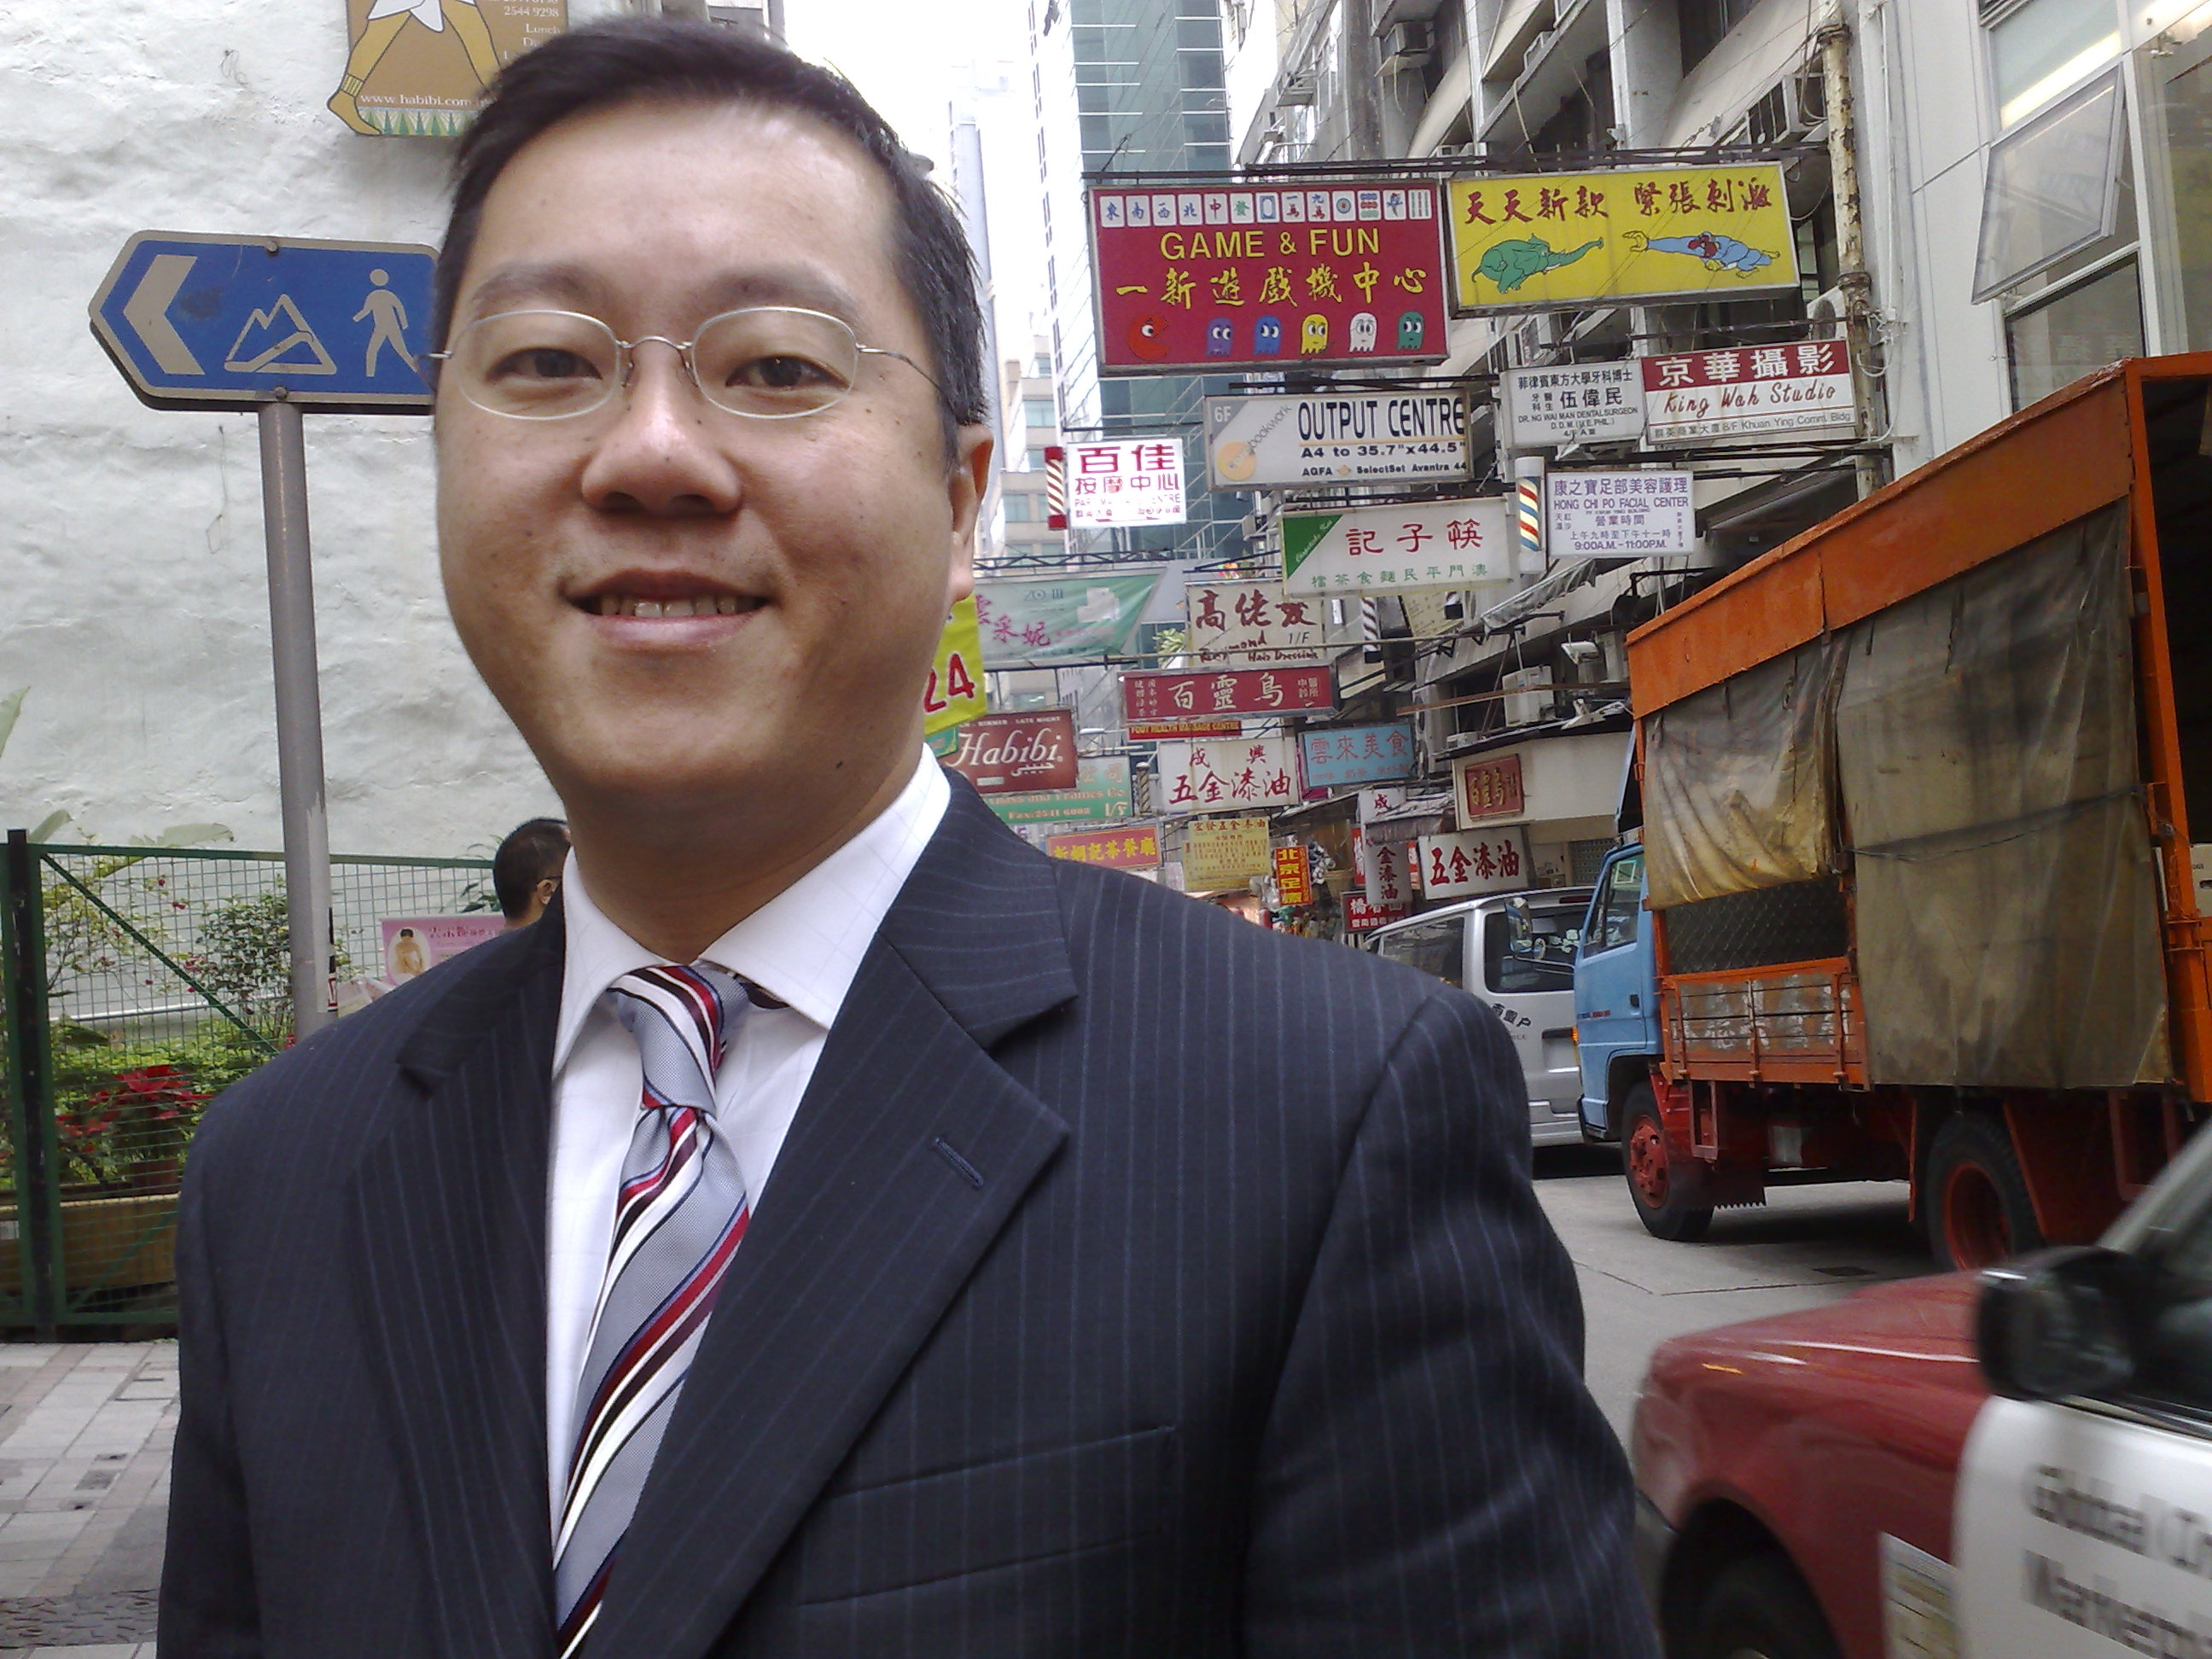 Pixel Media's Kevin Huang on 3 trends for China's Internet advertising in 2008